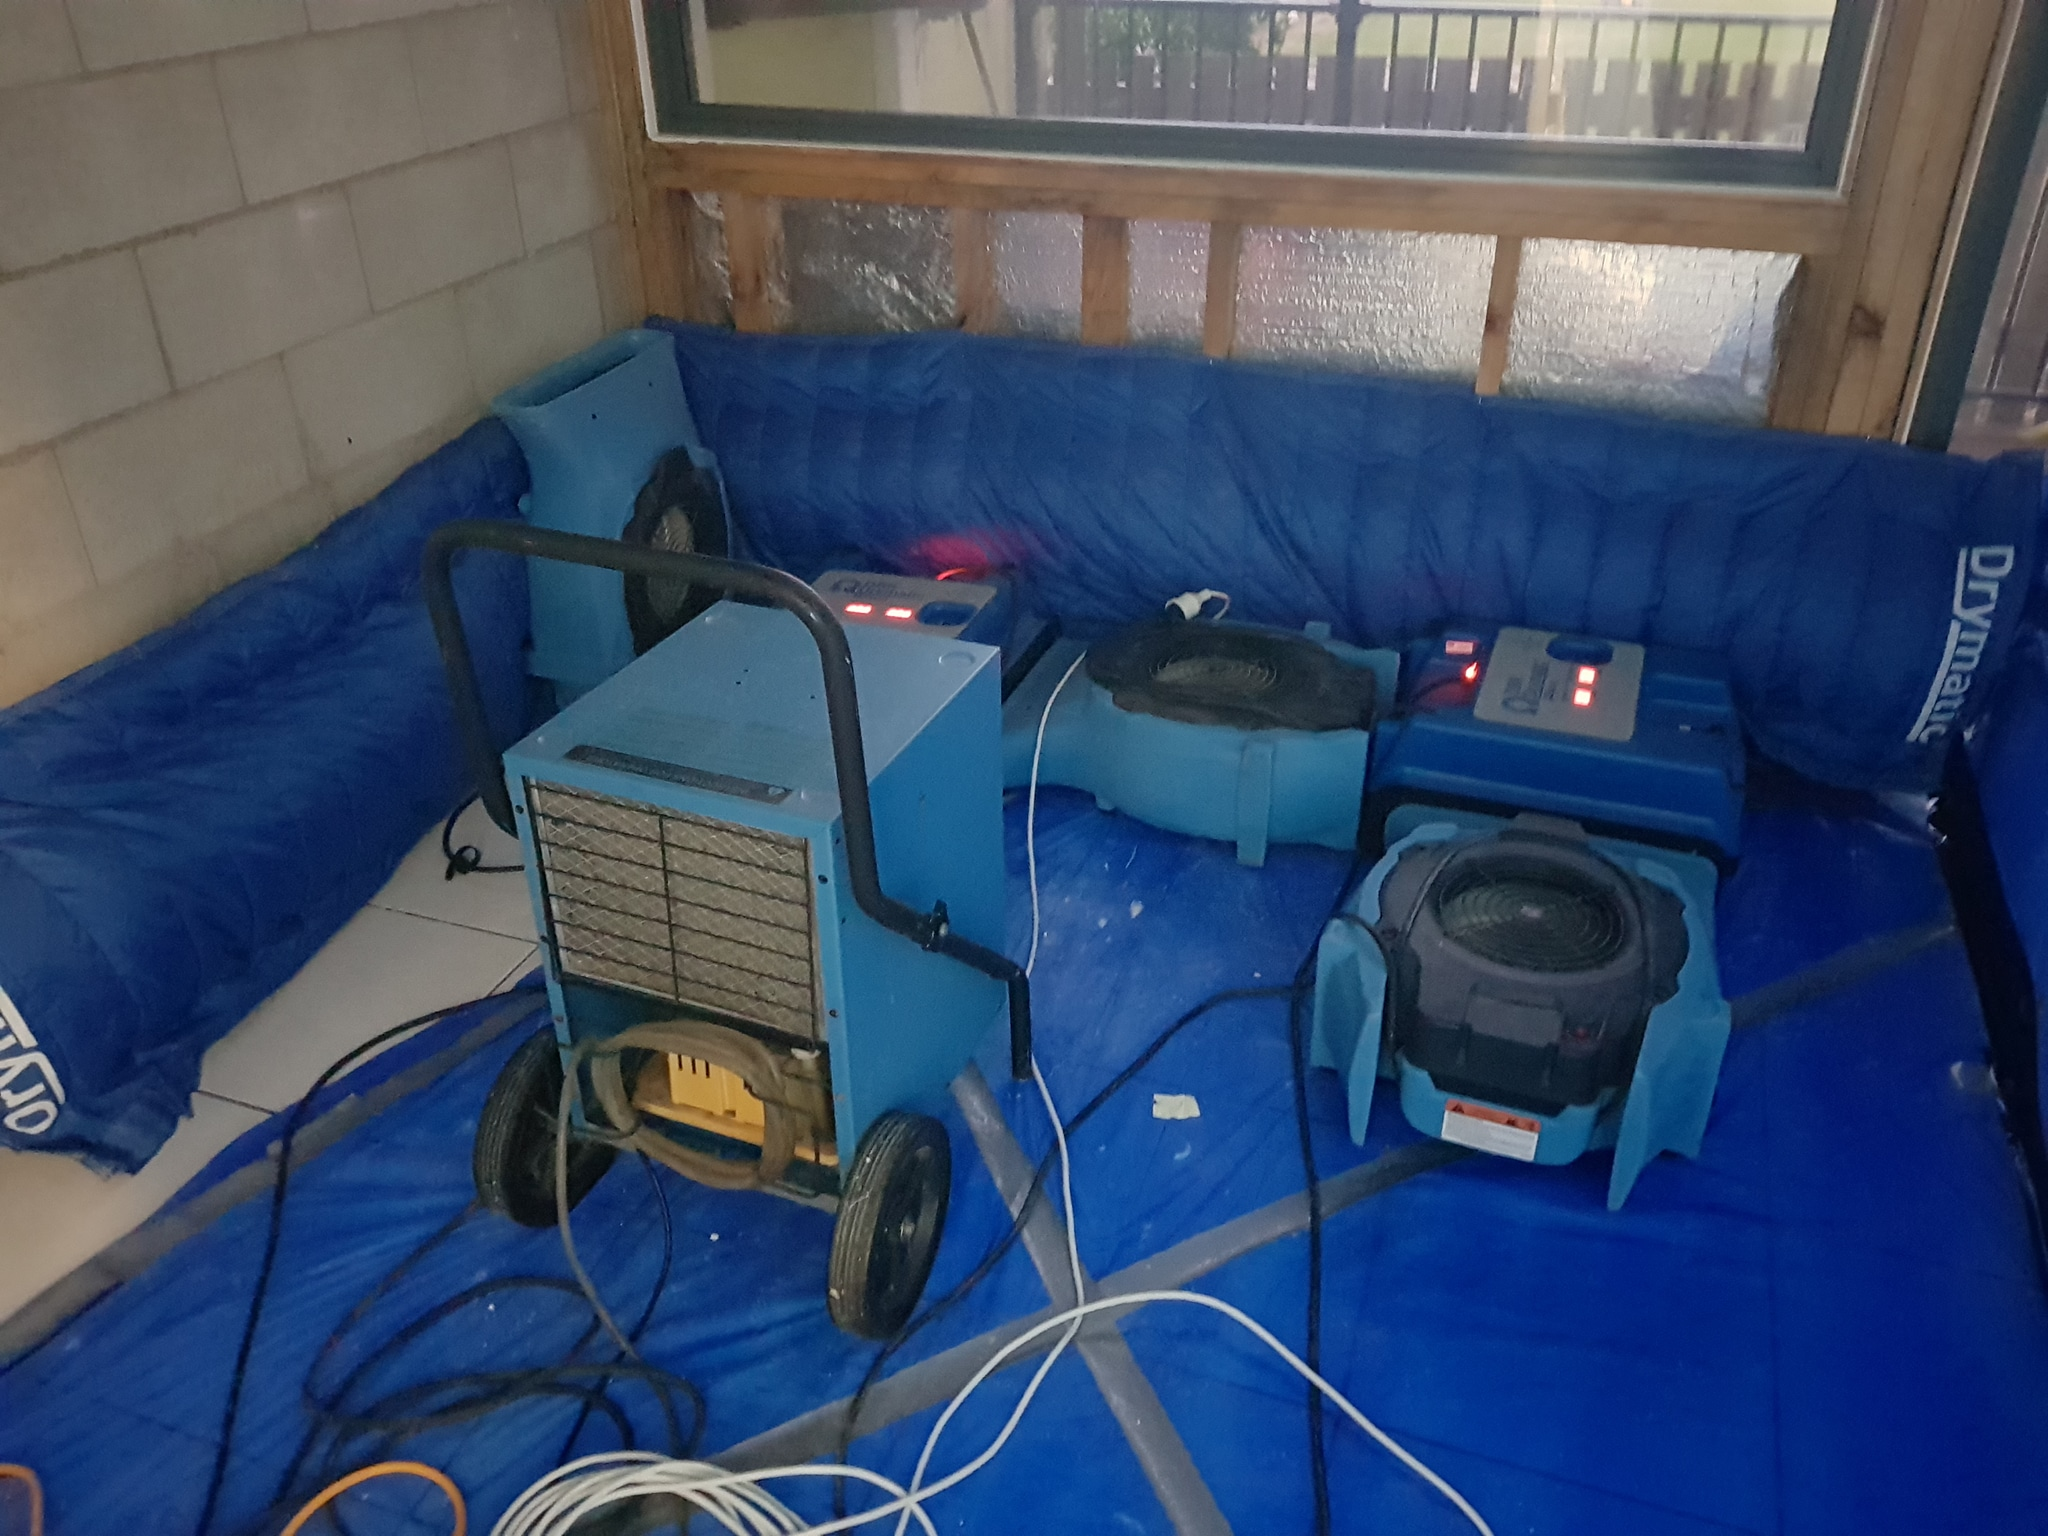 Drying equipment in use at a flooded property